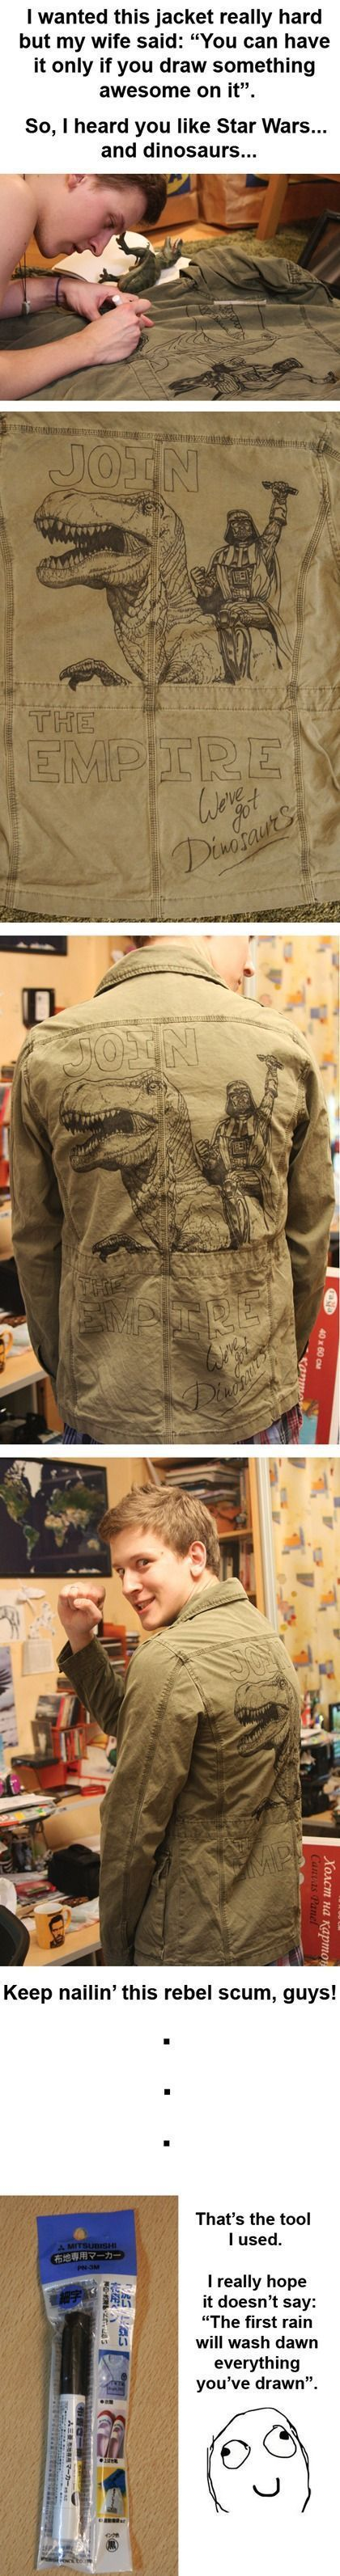 Man Turns Jacket Into Art